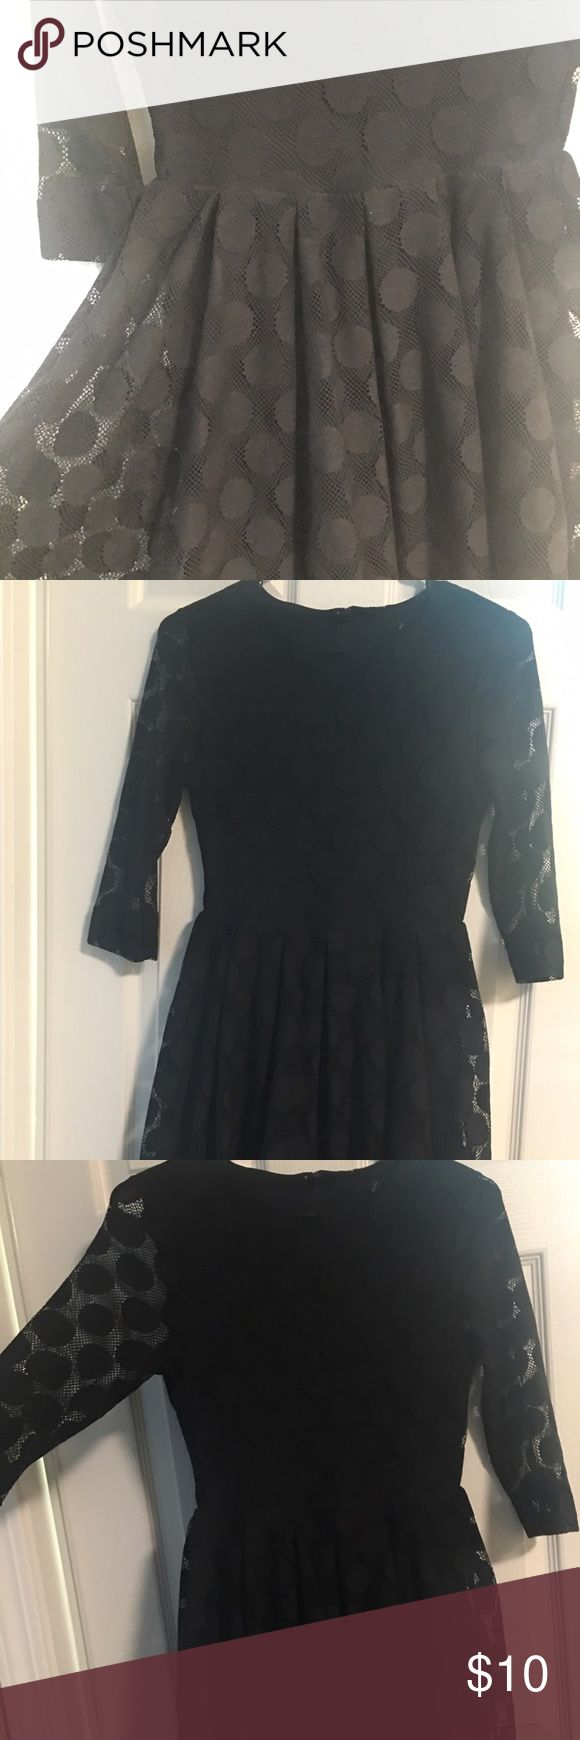 H&M black Polka dots 3/4 sleeves dress In the process of Decluttering.... Feel free to make offer and ask questions. Thank you. H&M Dresses Midi